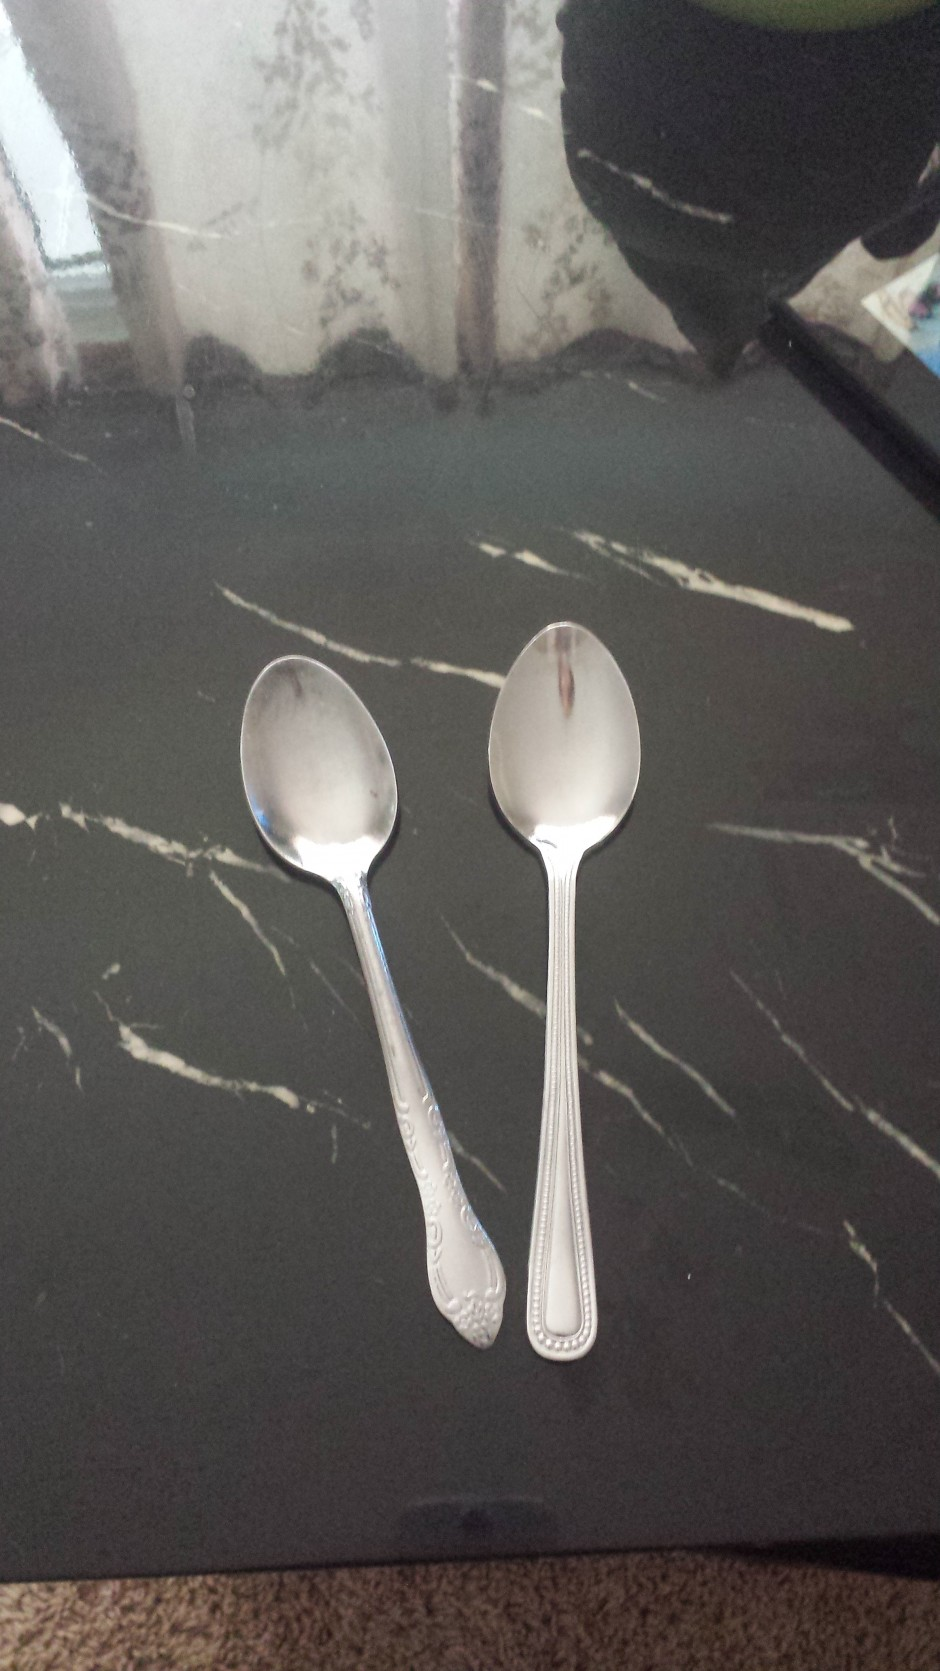 I actually hate these spoons.